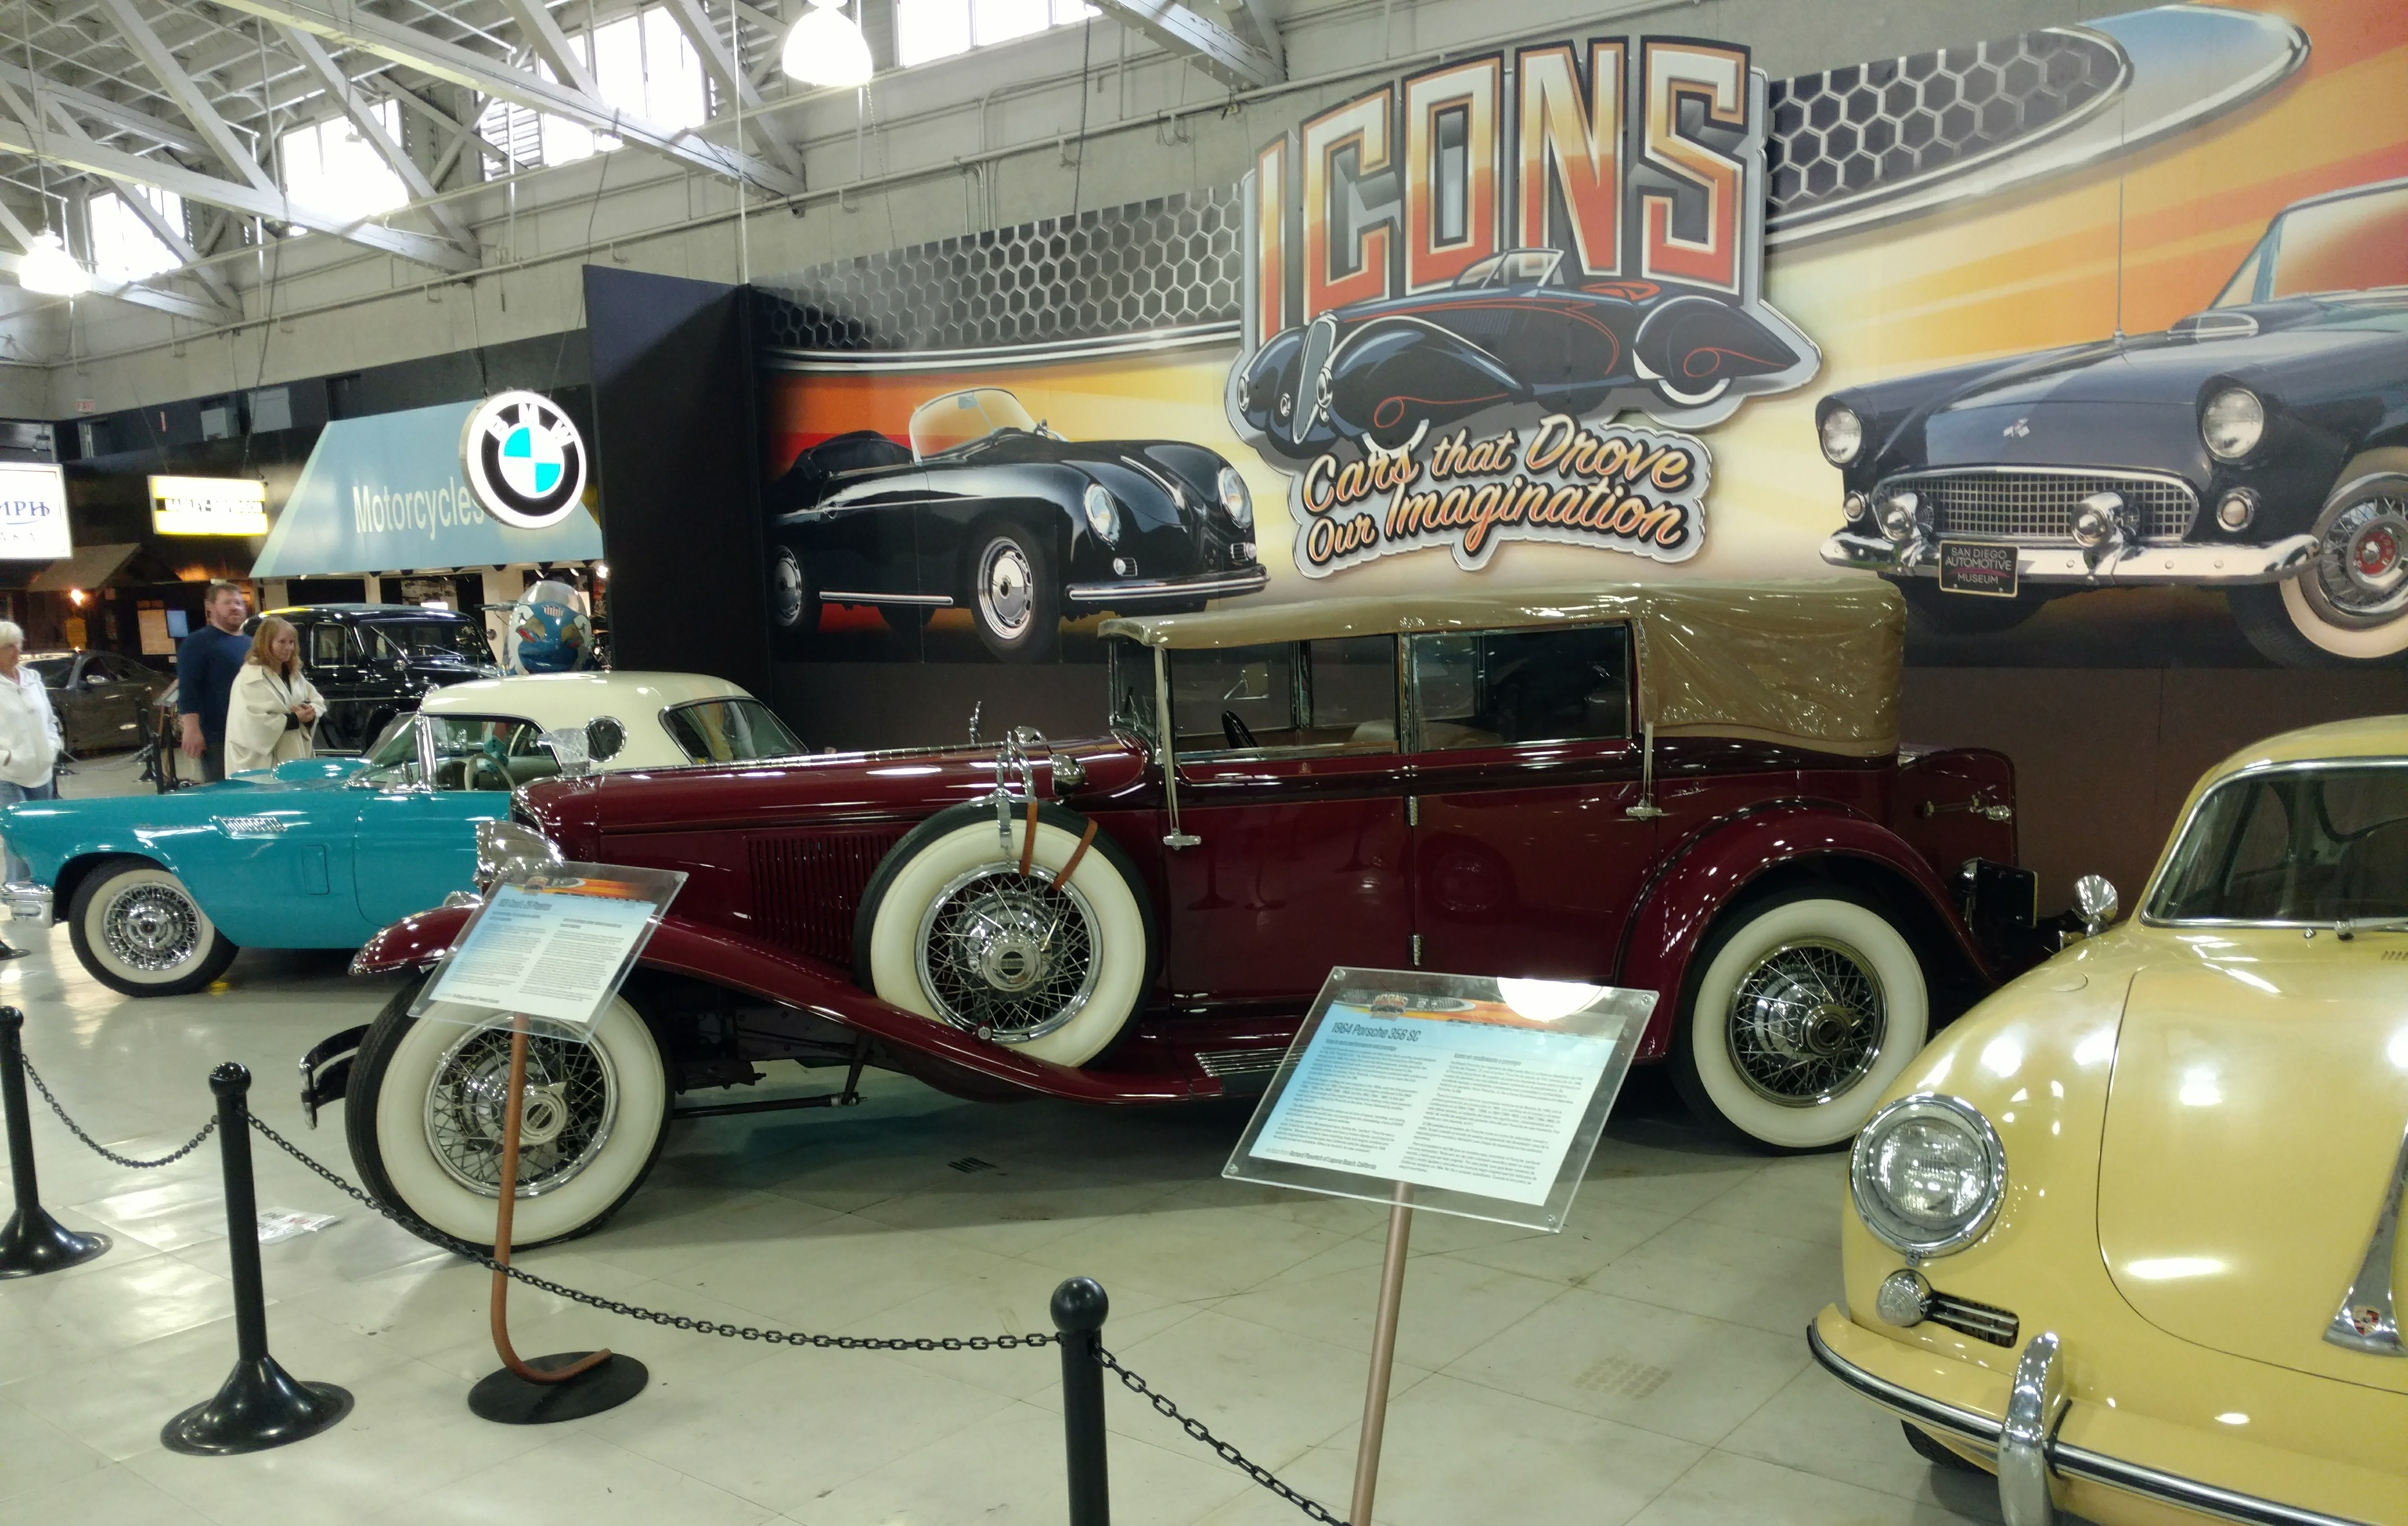 Icons: Cars that Drove Our Imagination | San Diego